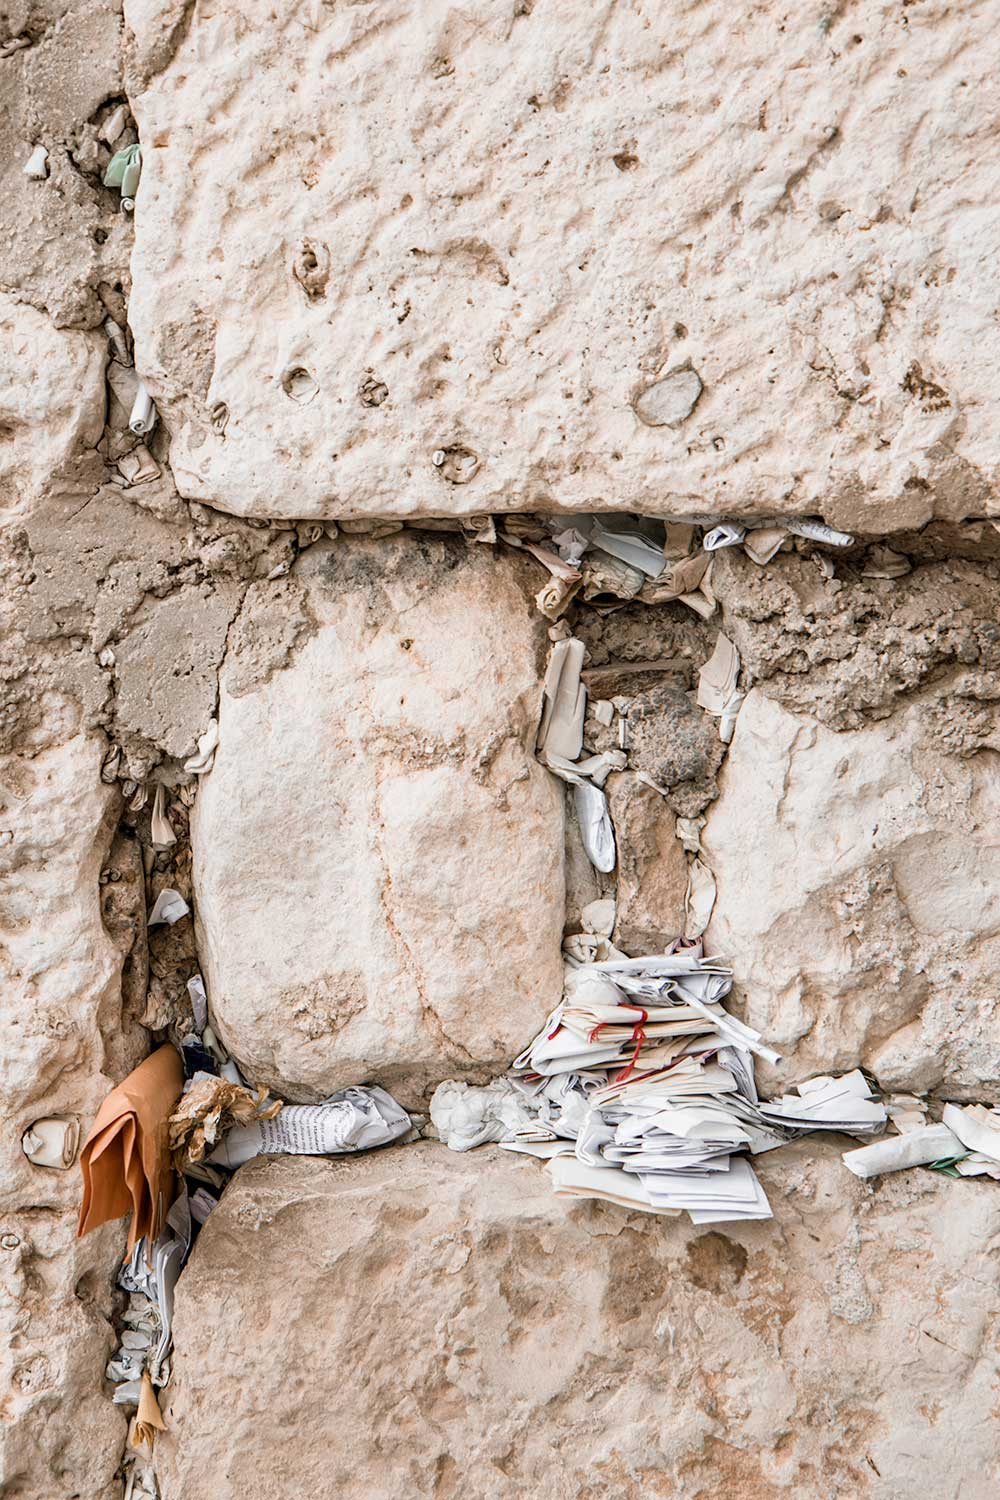 Prayers hidden in the Wailing Wall of Jerusalem